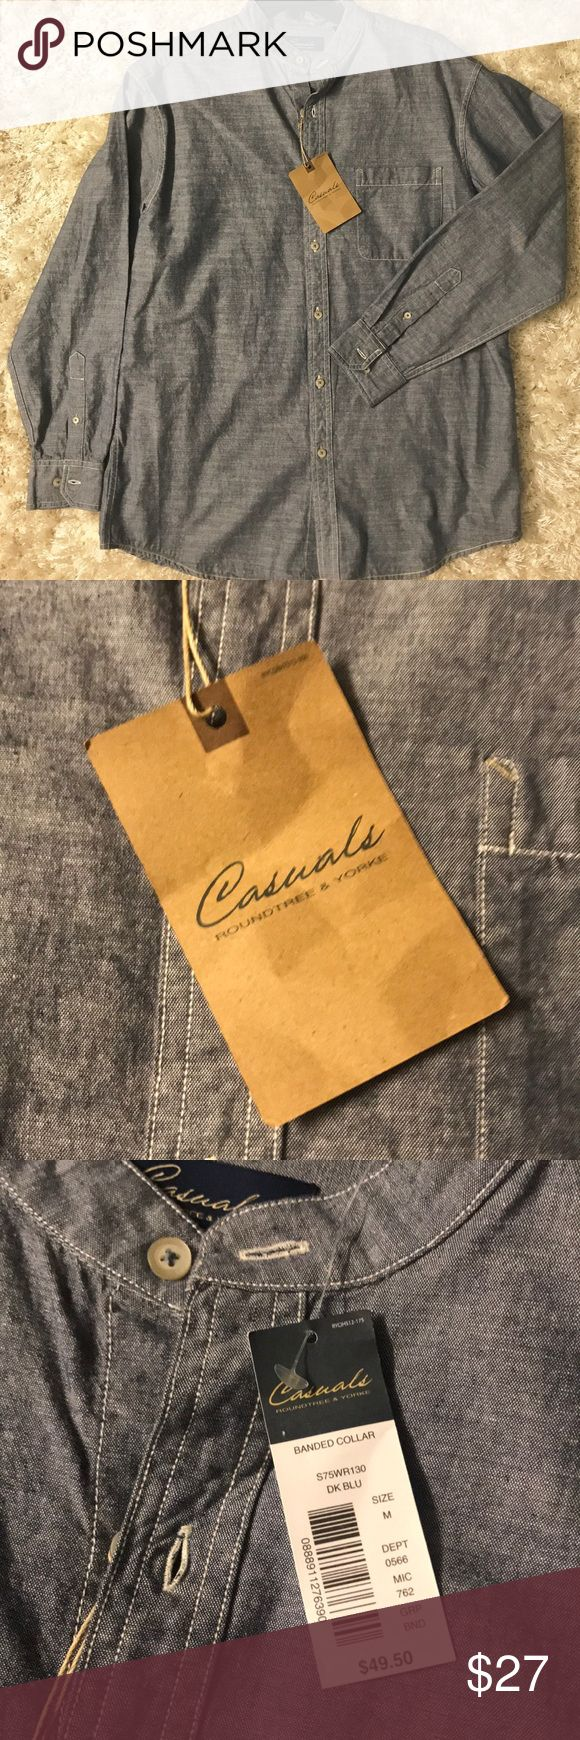 Casuals Roundtree & York banded collar shirt Casuals Roundtree & York banded collar men's shirt. It looks like denim. Size M. New with tags. Roundtree & Yorke Shirts Casual Button Down Shirts